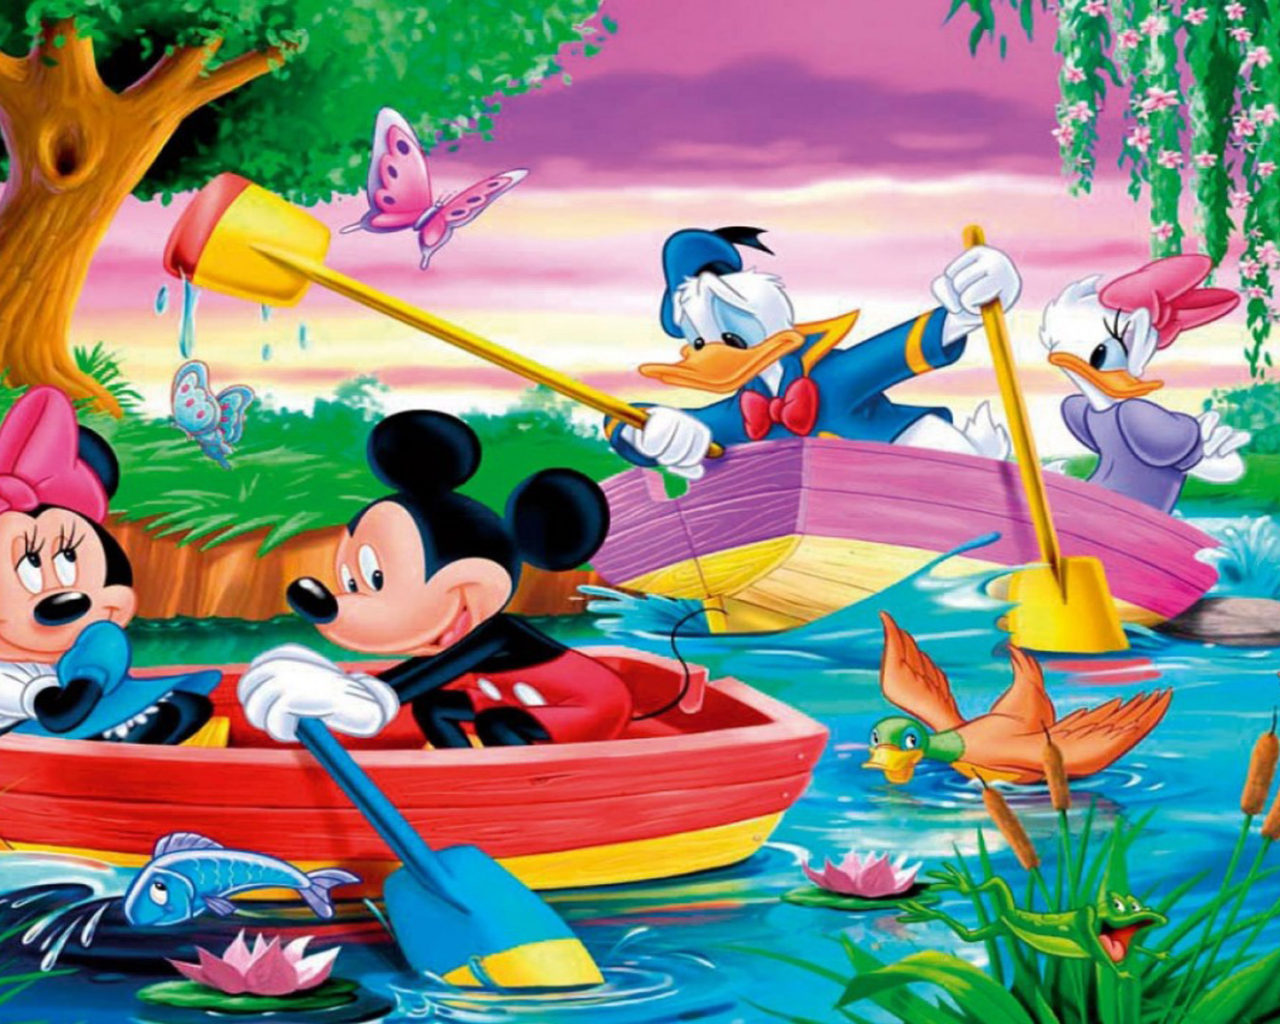 Iphone X Frame Wallpaper Mickey Mouse And Donald Duck River Boat Rowing Hd Desktop